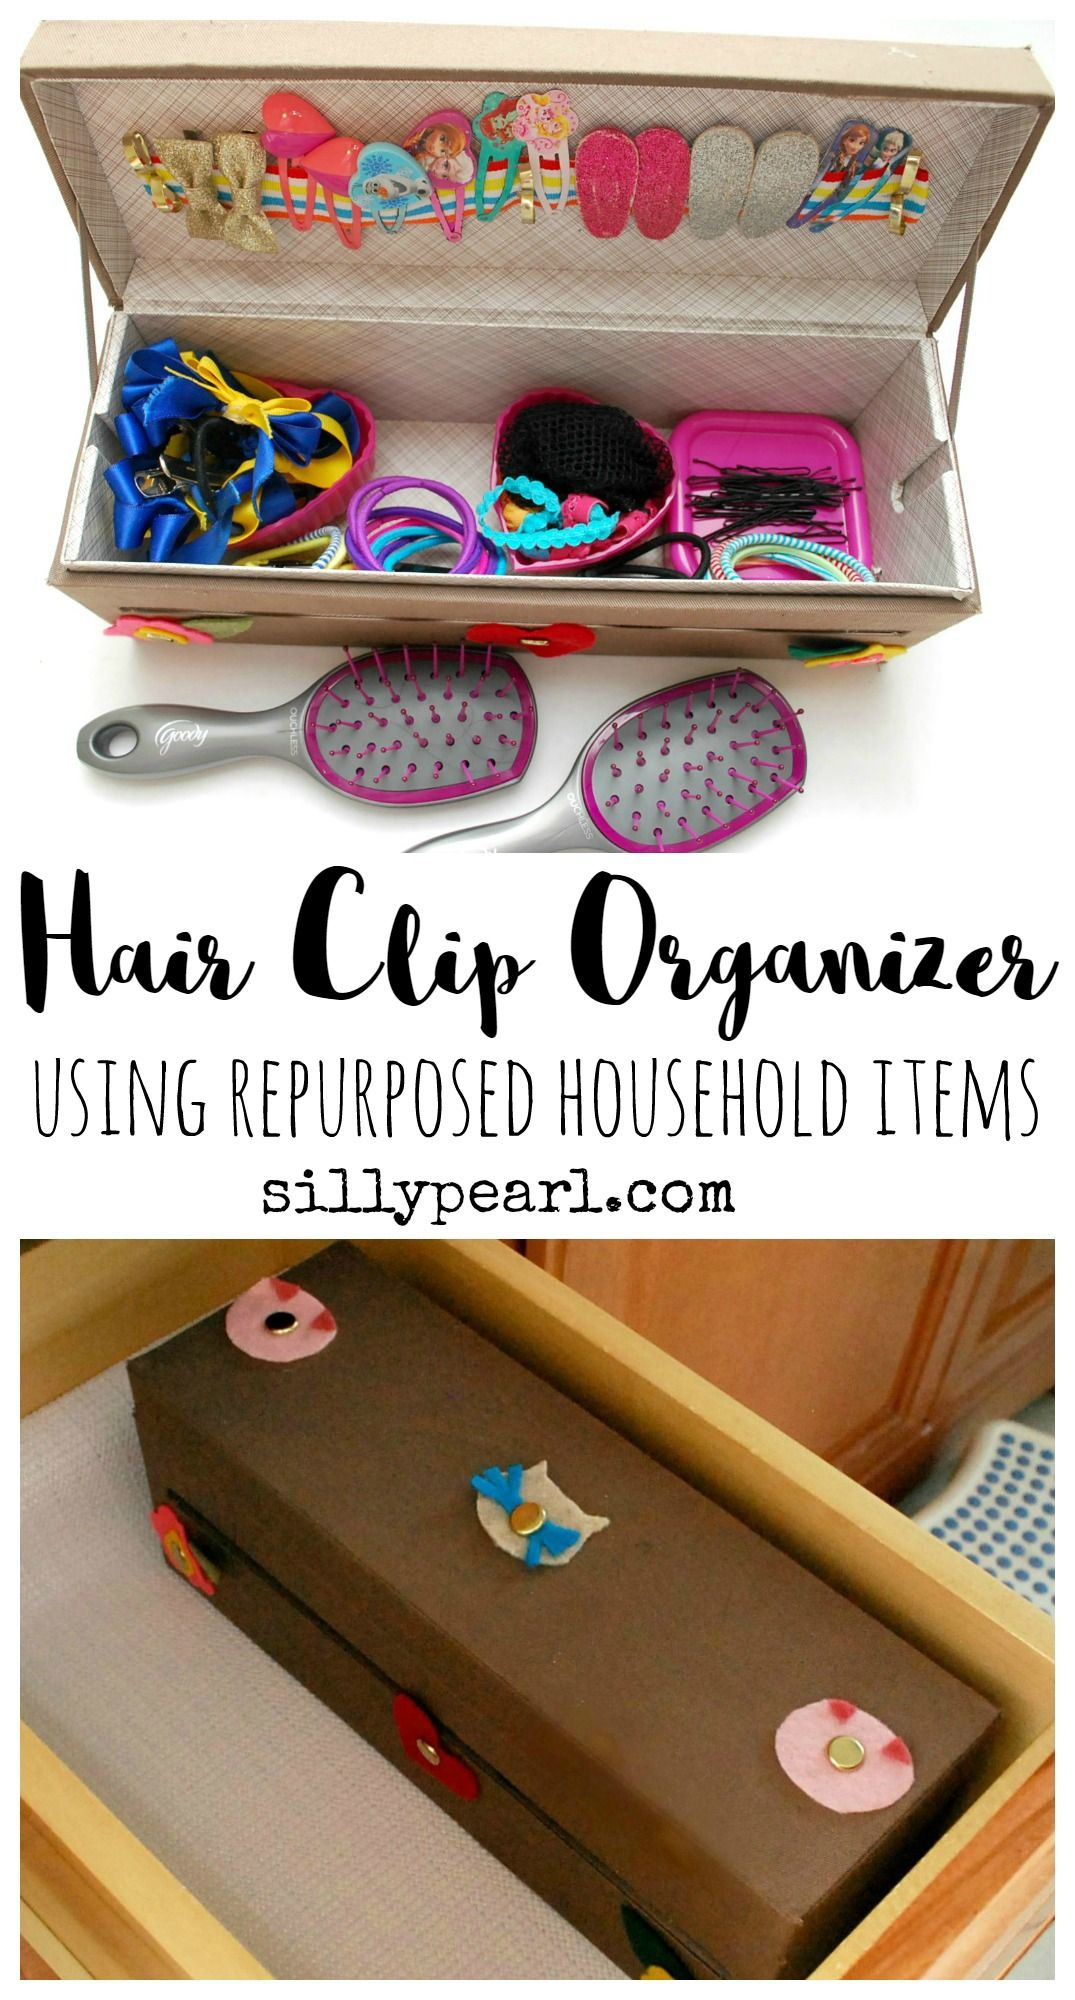 Hair Clip Organizer from Repurposed Items organize house